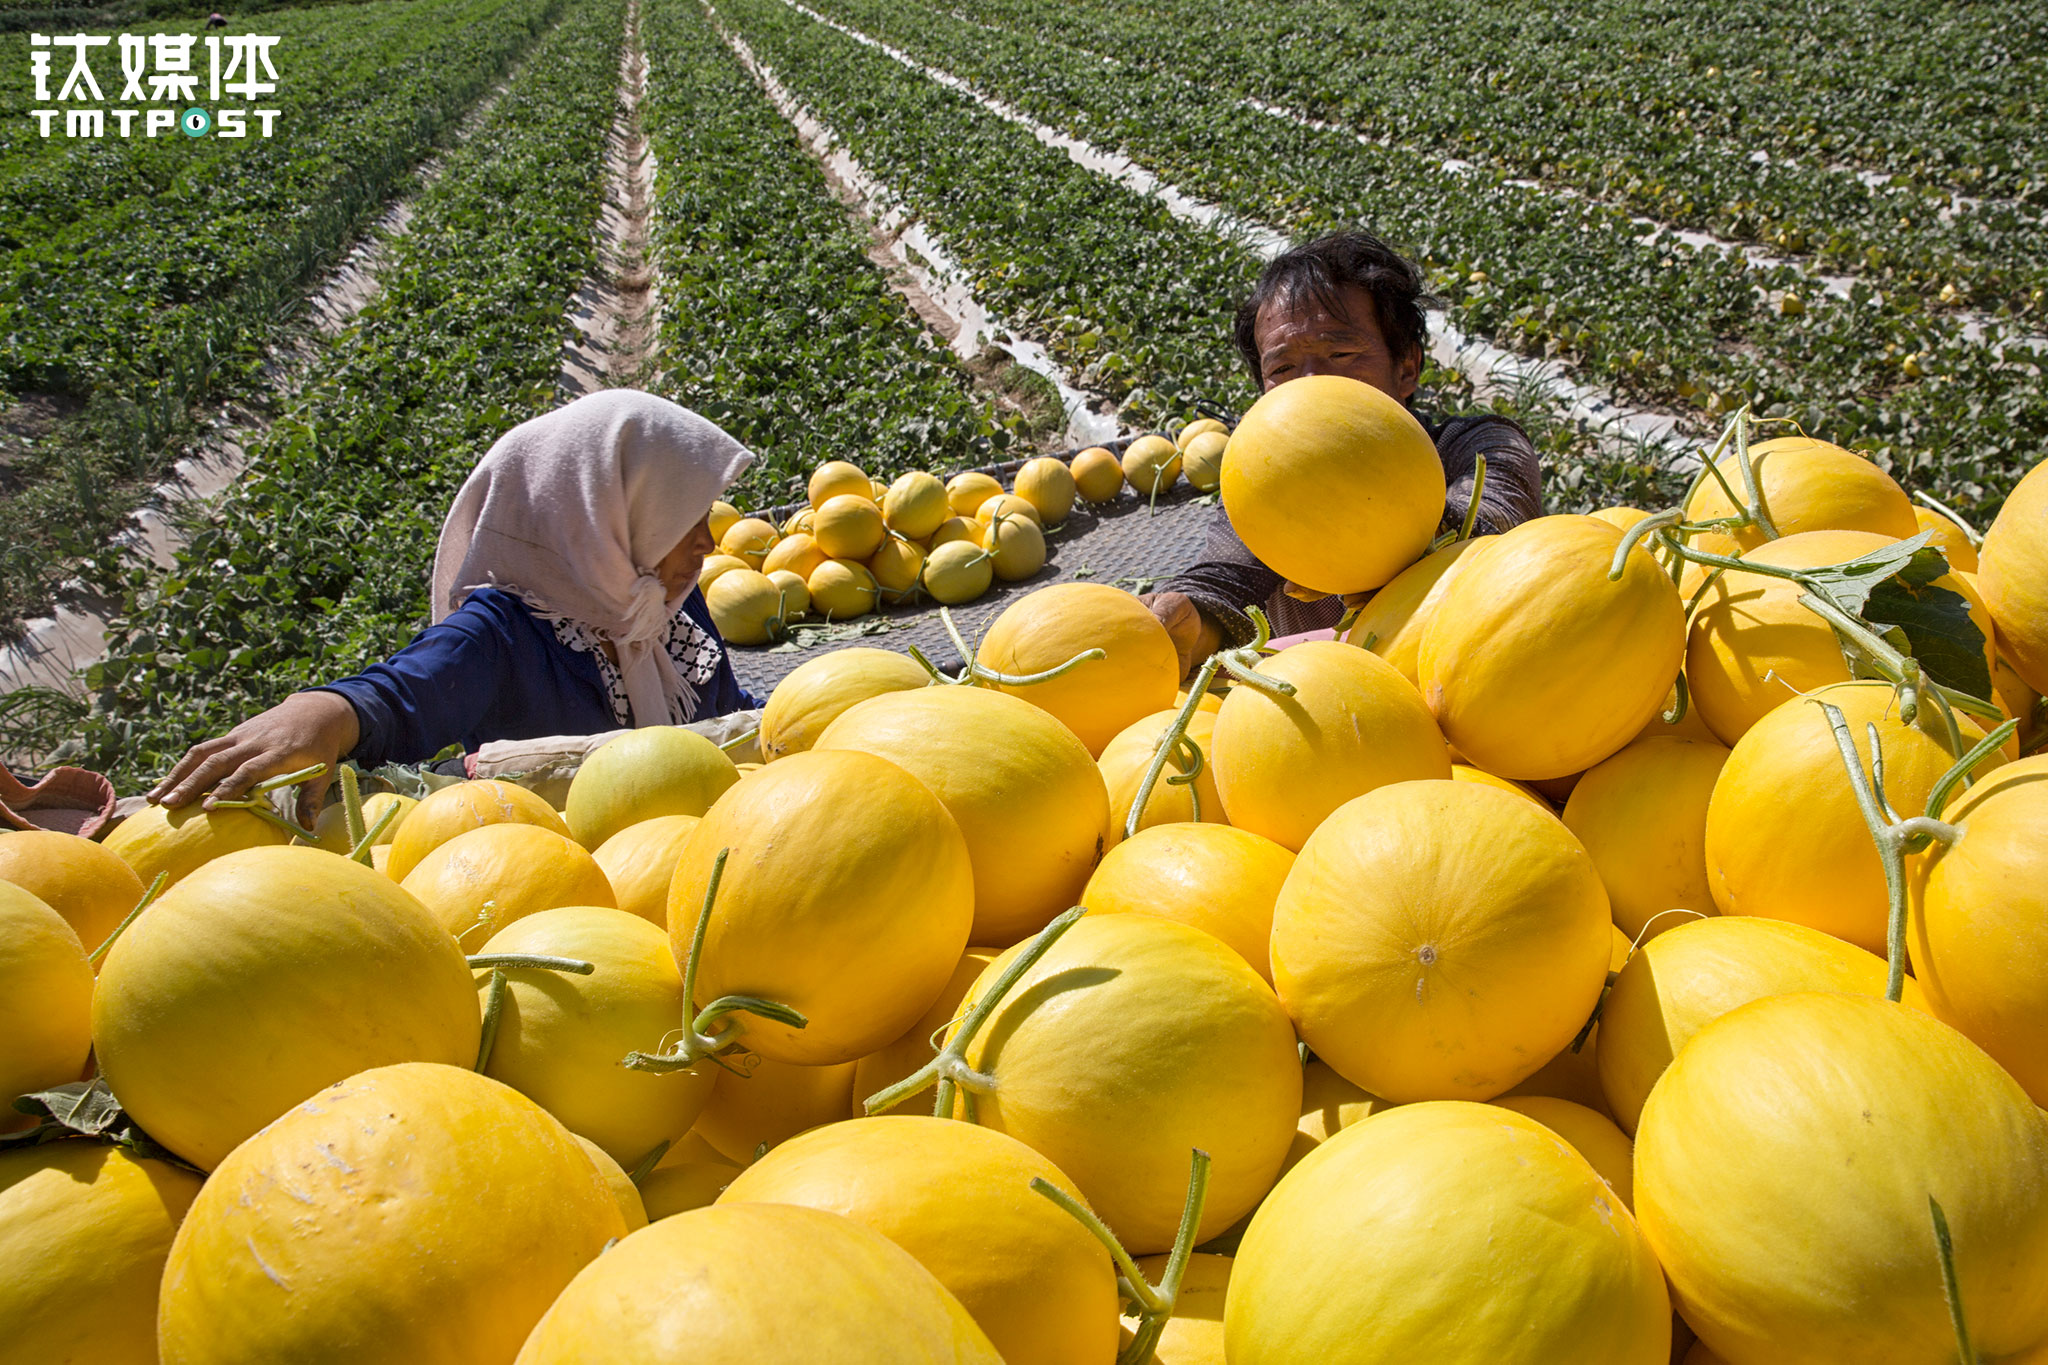 July 16th, 2017. A couple was harvesting Minqin honeydew melons in the field. Minqin honeydew melons are the main fresh produce that the farmers here rely on for a living. Every year, wholesalers from all over the country will come to Minqin to purchase melons. This is the busiest season for local farmers. Local farmers usually sell their melons to wholesalers at a price of 70 to 80 cents per kilogram. This year the price dropped to 30 to 40 cents due to the flood in the south.